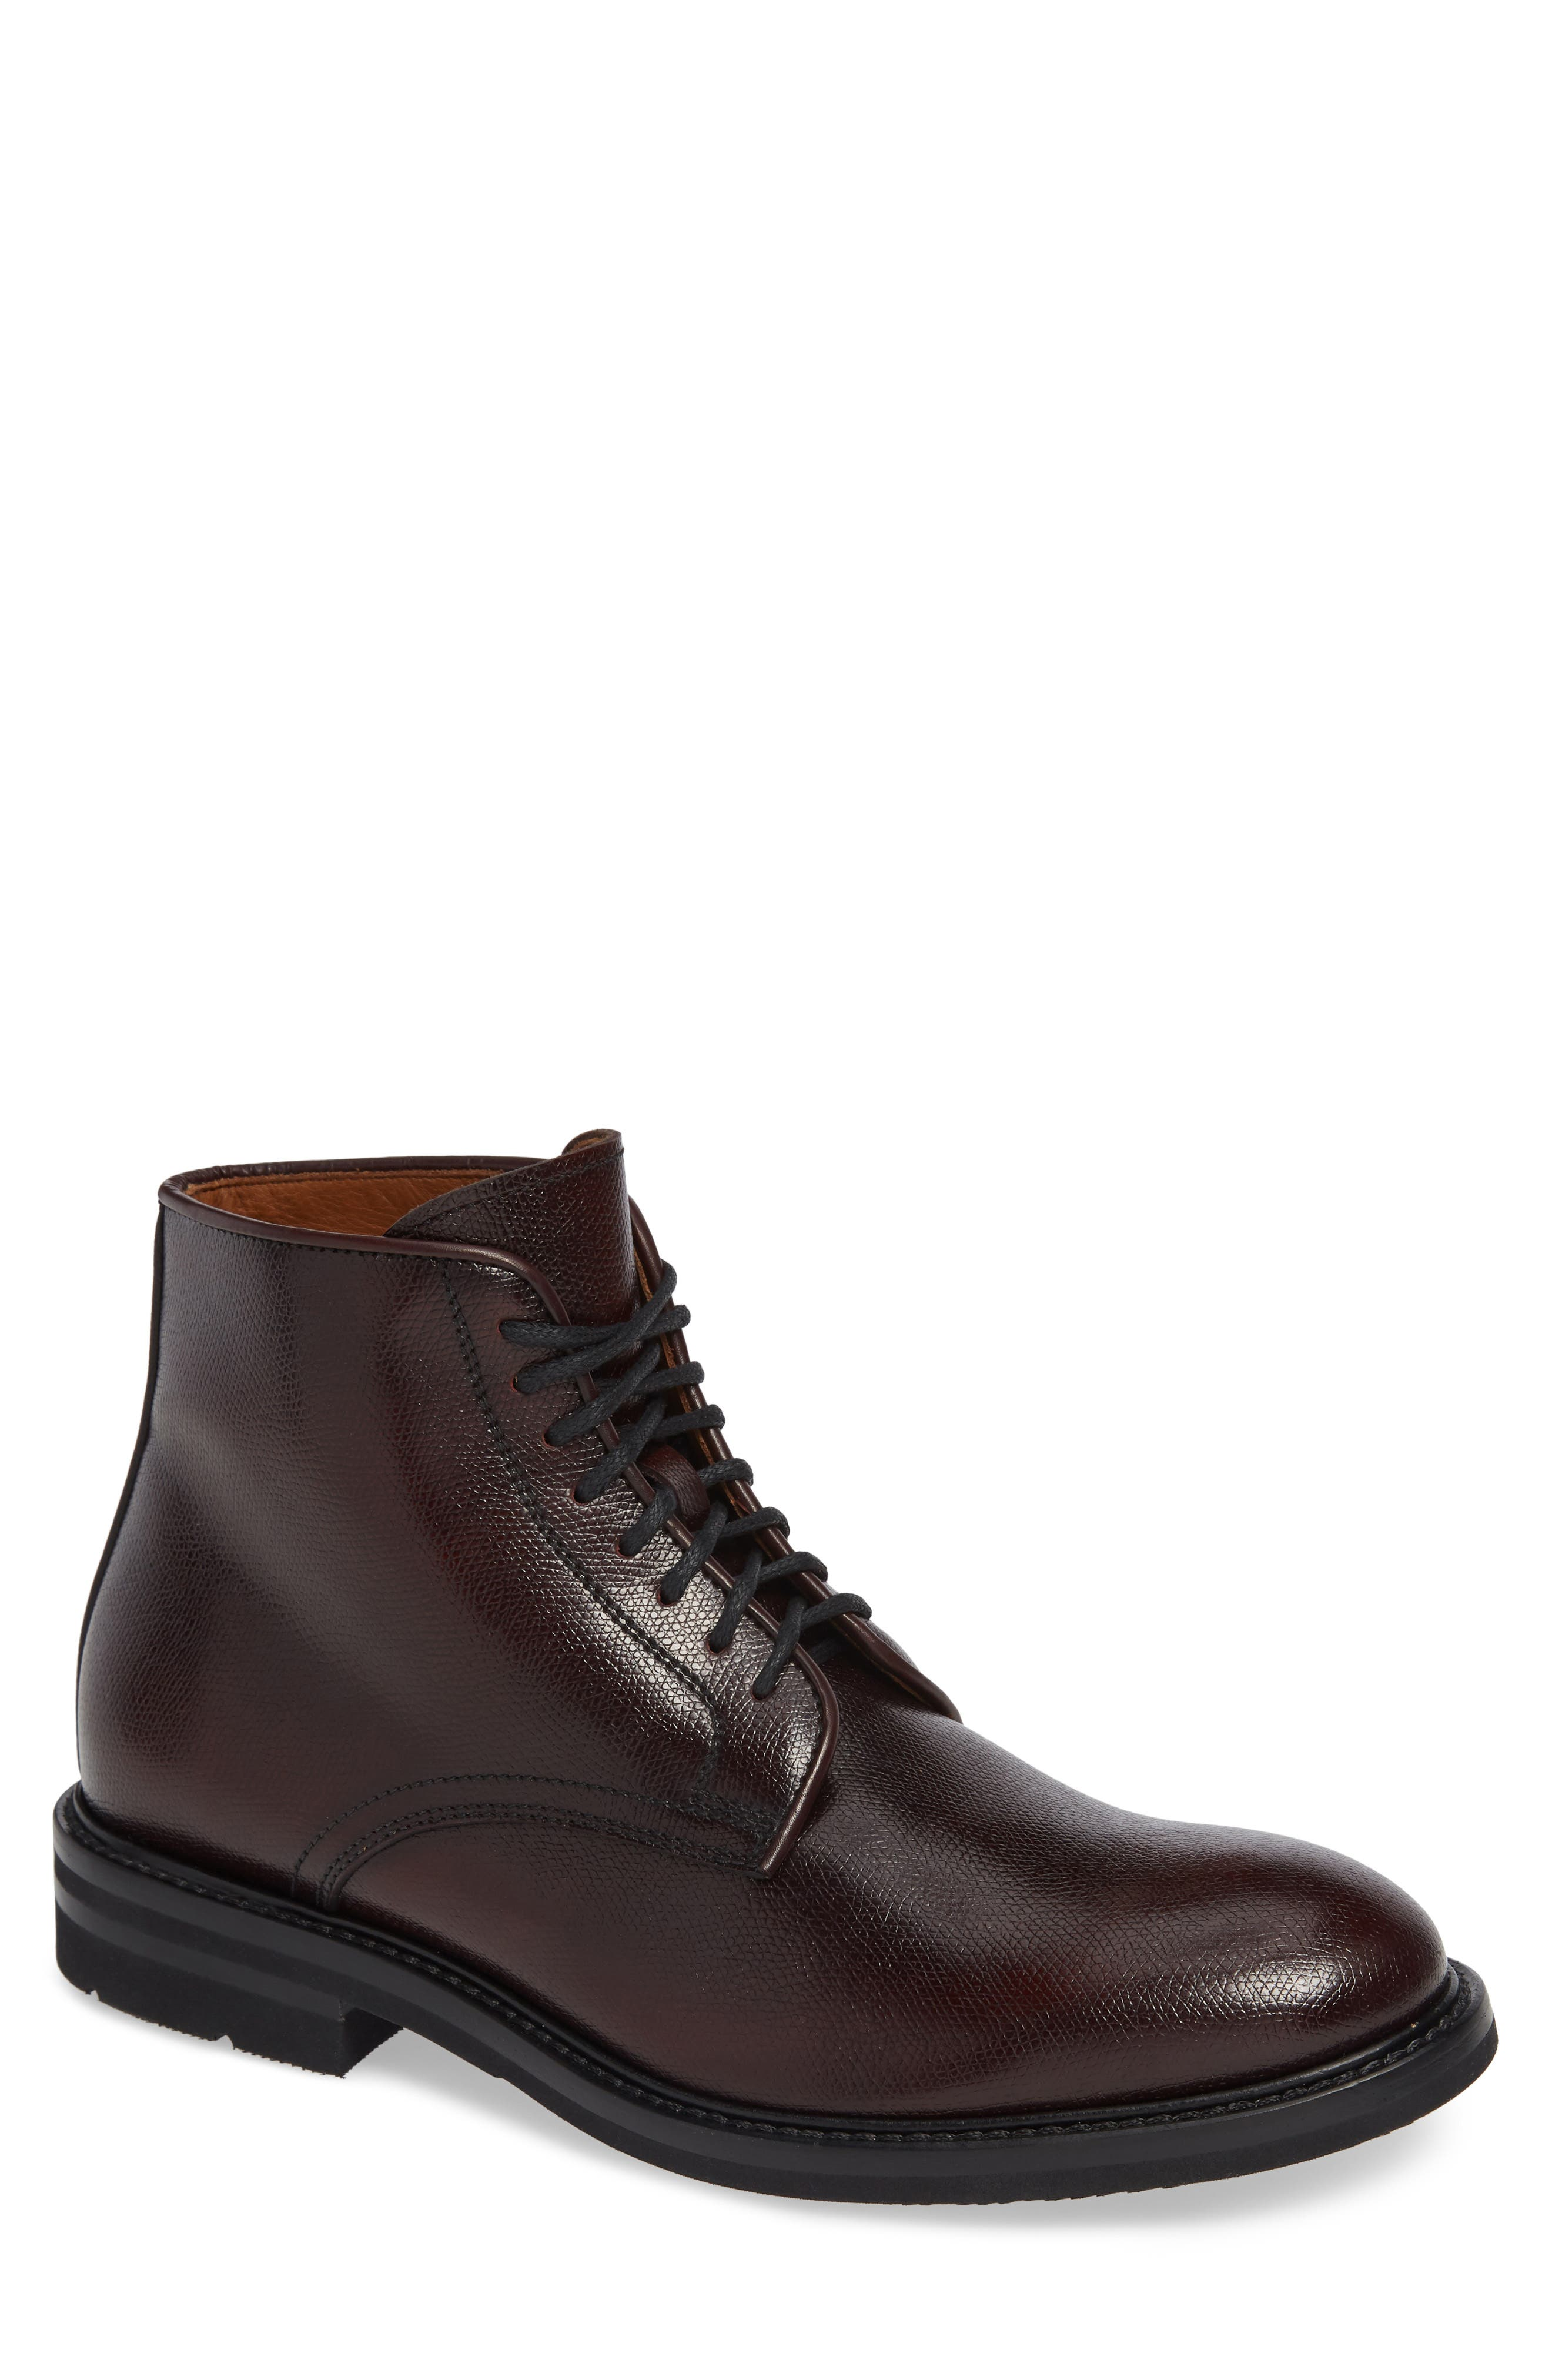 Aquatalia Renzo Water Resistant Plain Toe Waterproof Boot, Red